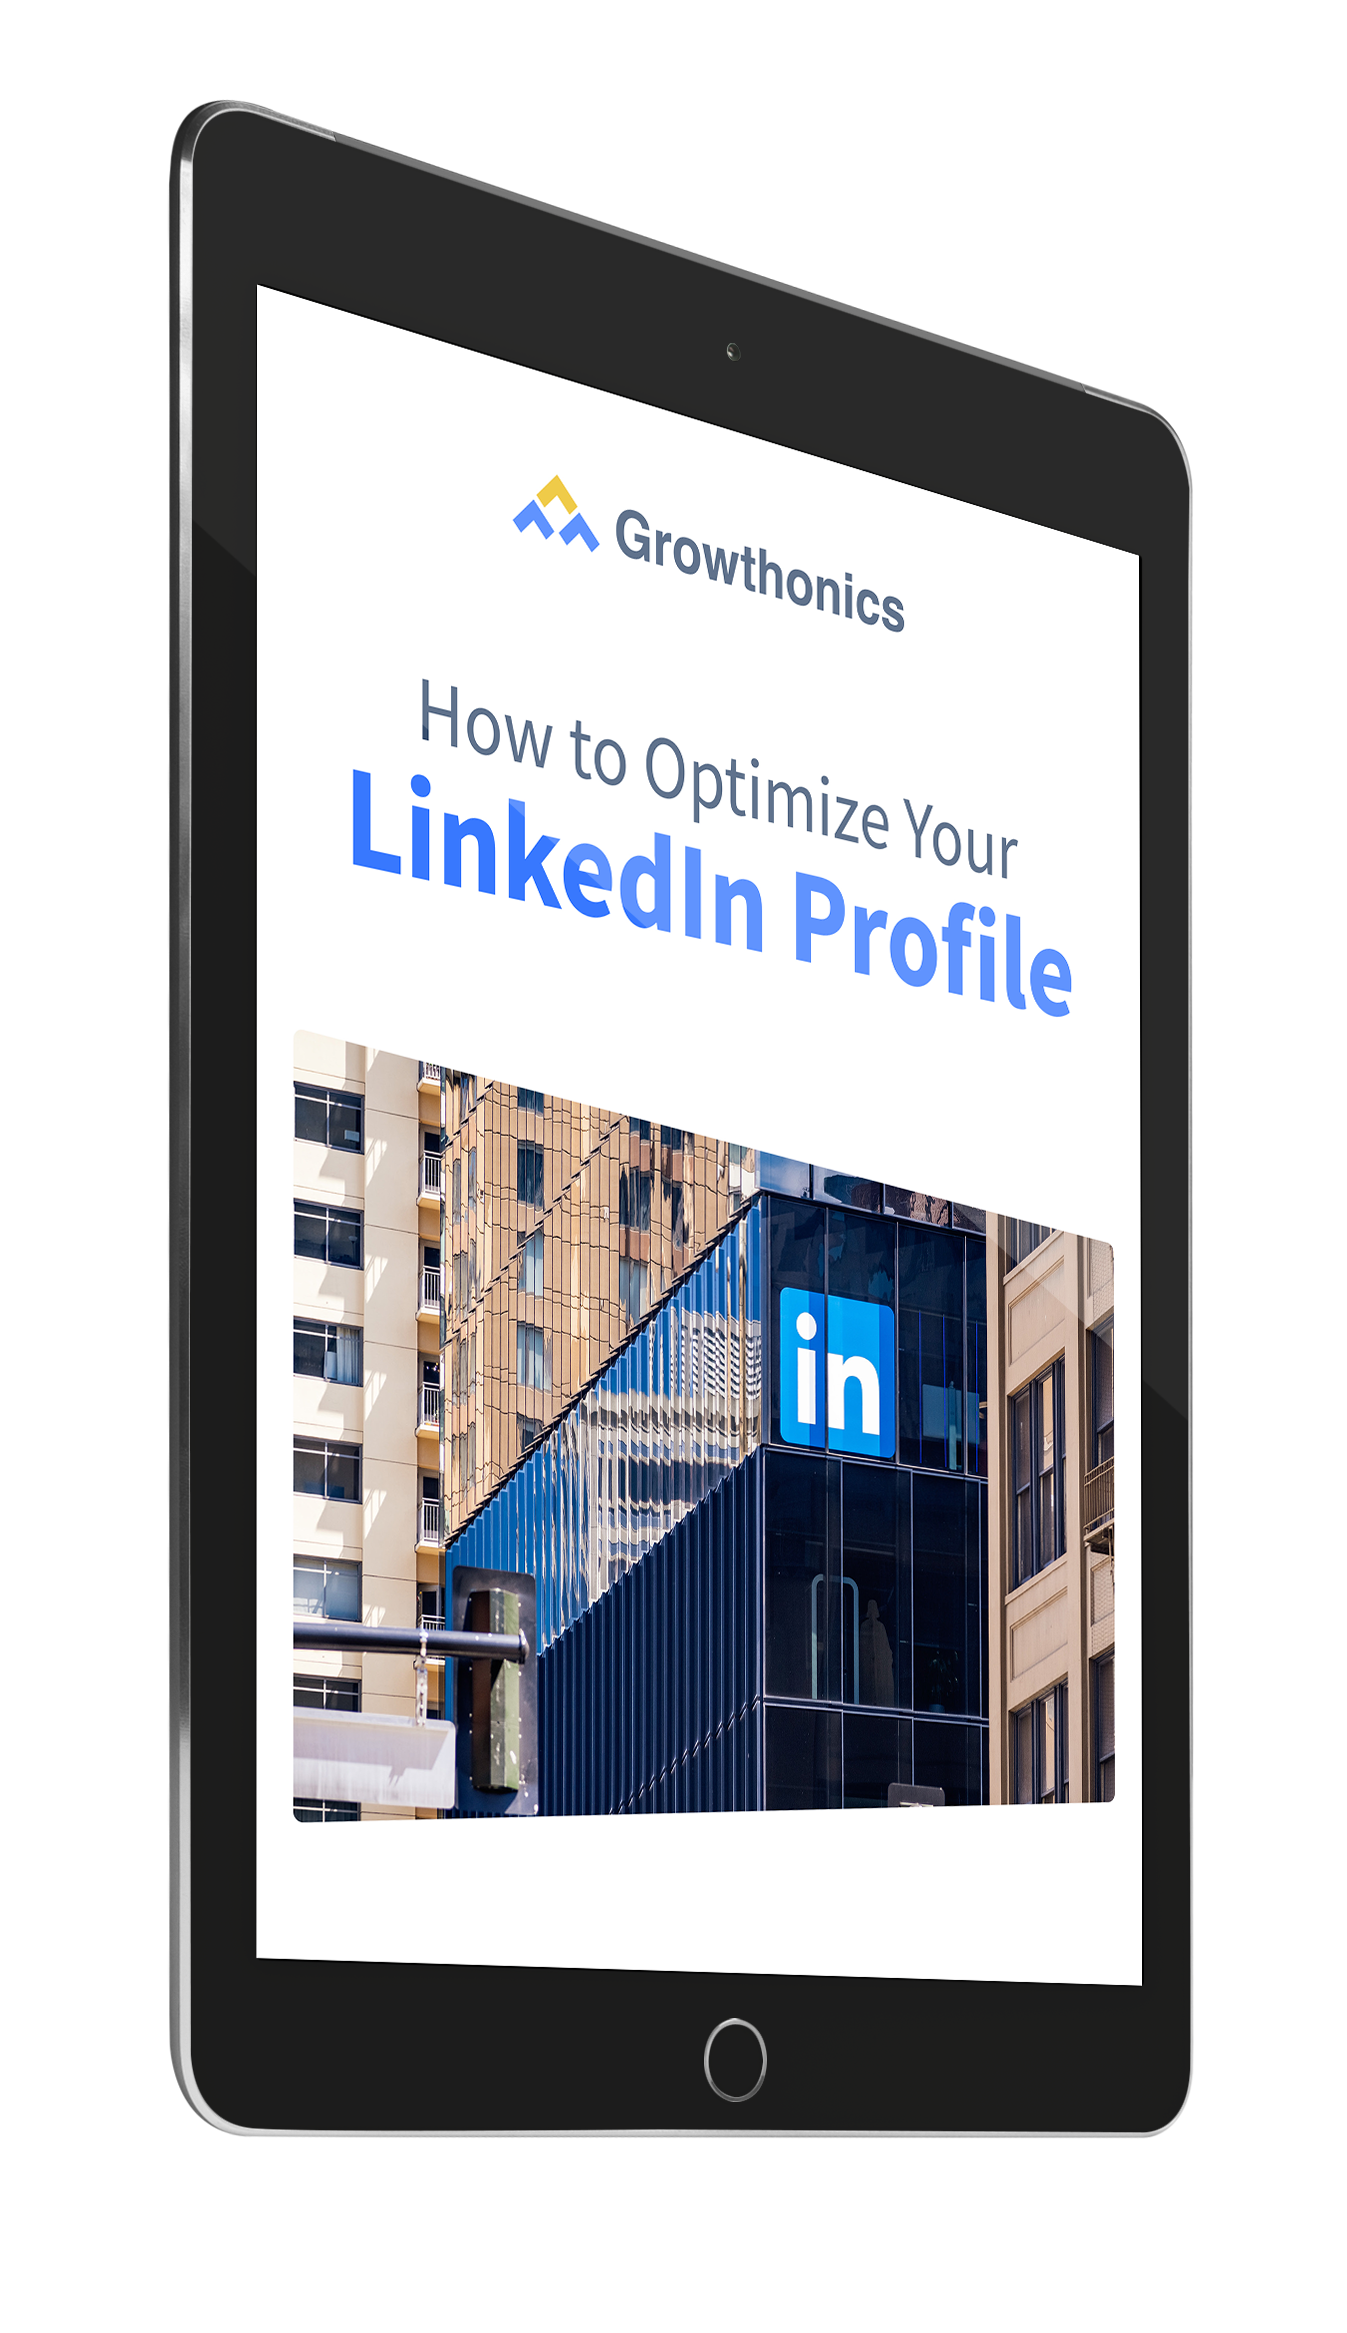 Ebook_How to Optimize Your LinkedIn Profile